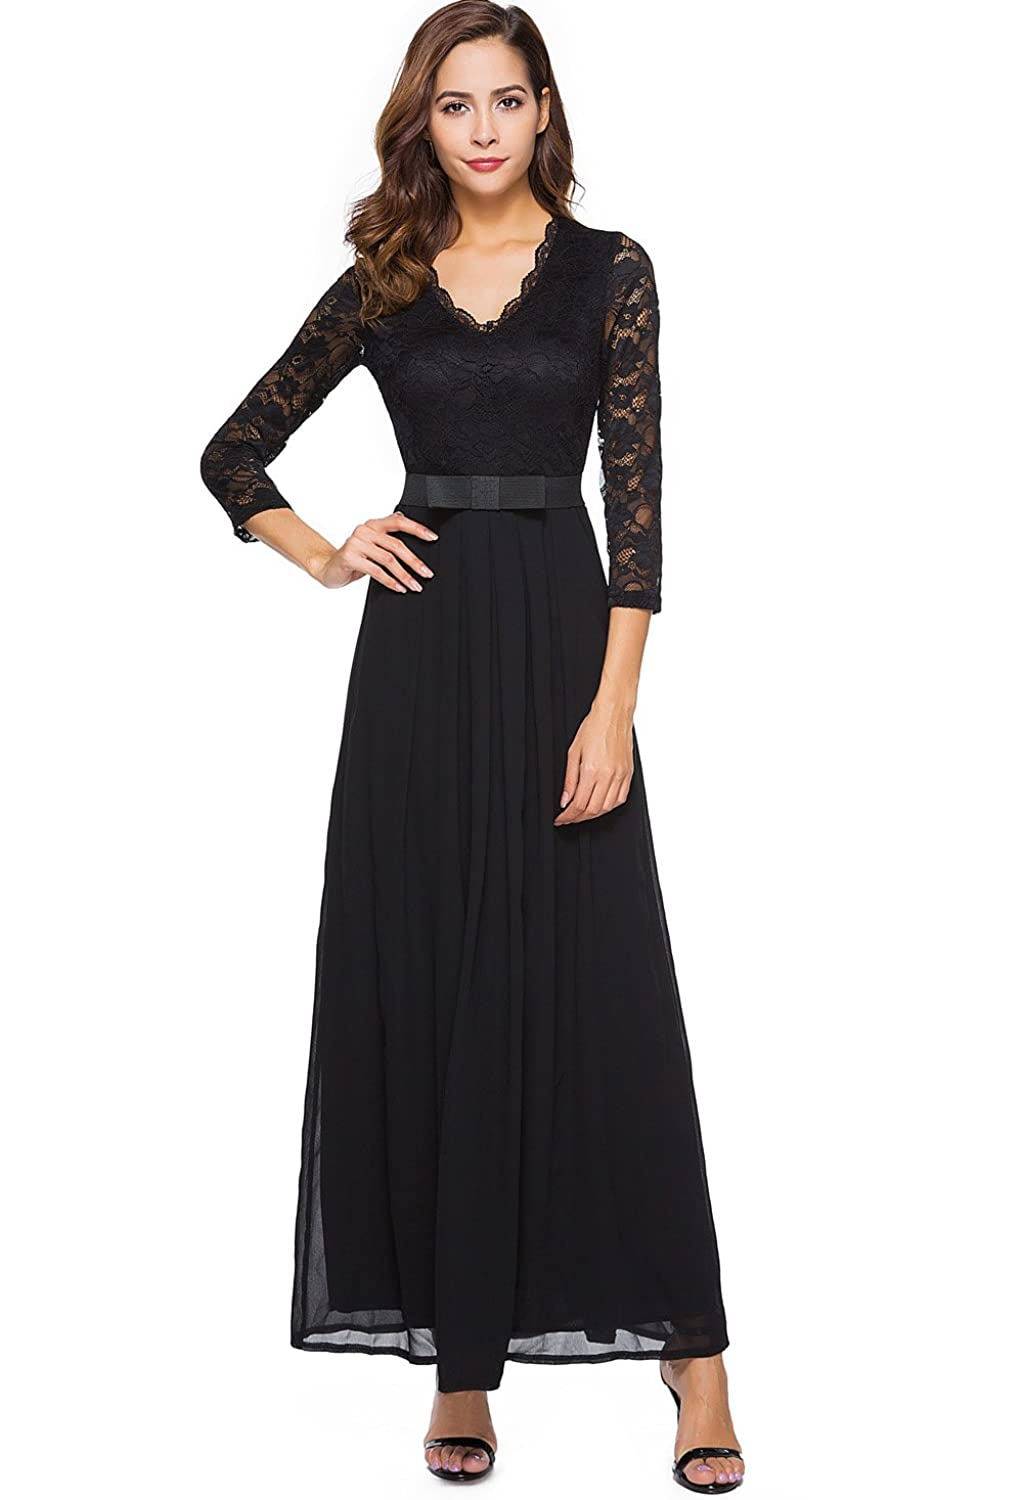 Victorian Dresses, Clothing: Patterns, Costumes, Custom Dresses Berydress Womens Vintage Floral Lace 3/4 Sleeve Evening Party Formal Dress Chiffon Long Maxi Dress $31.00 AT vintagedancer.com